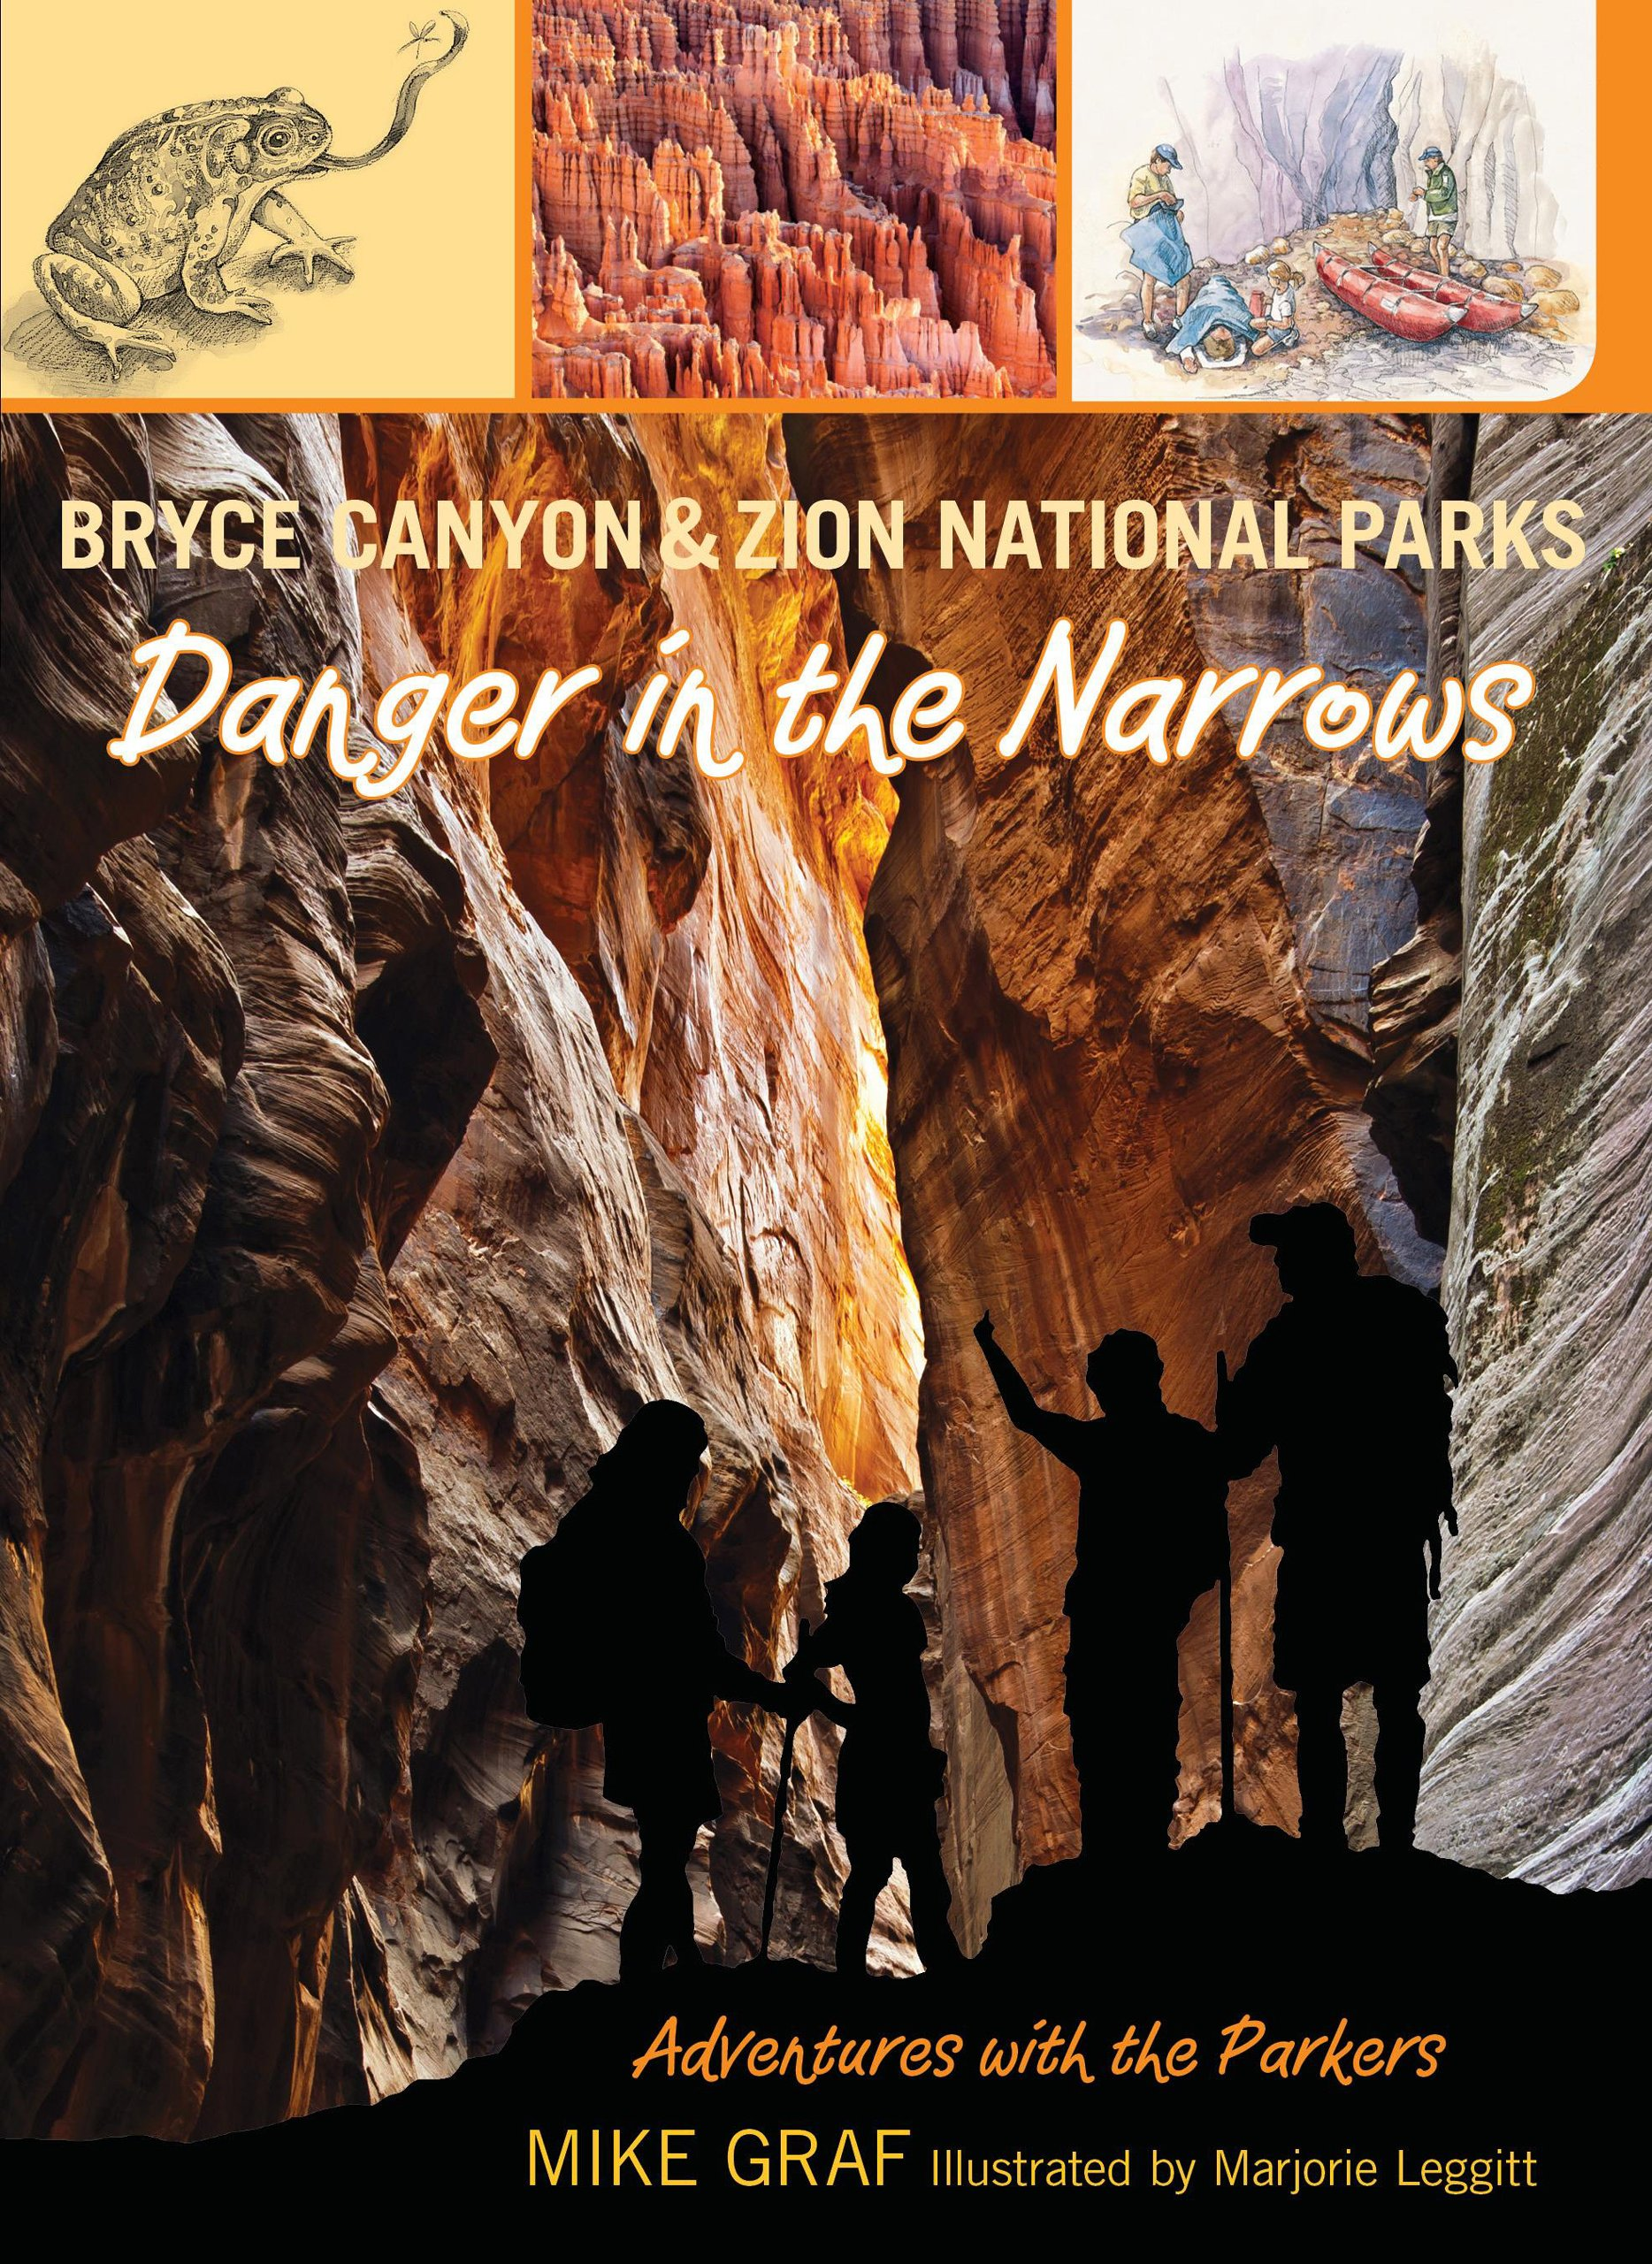 Download Bryce Canyon and Zion National Parks: Danger in the Narrows (Adventures with the Parkers) pdf epub